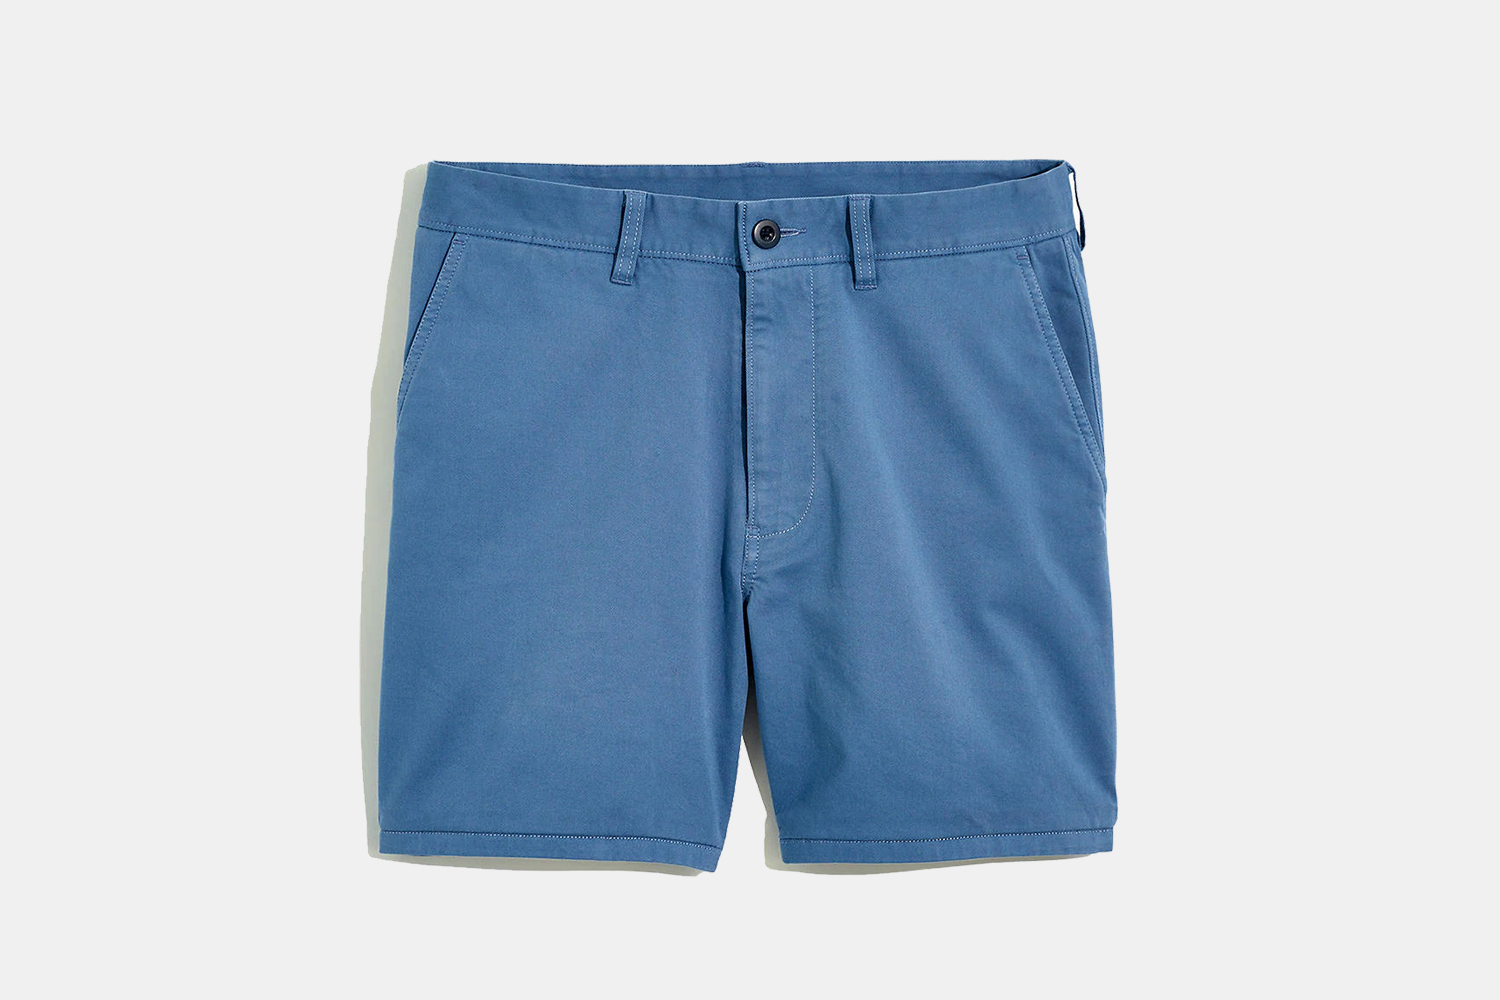 Madewell Men 7-Inch Chino Shorts